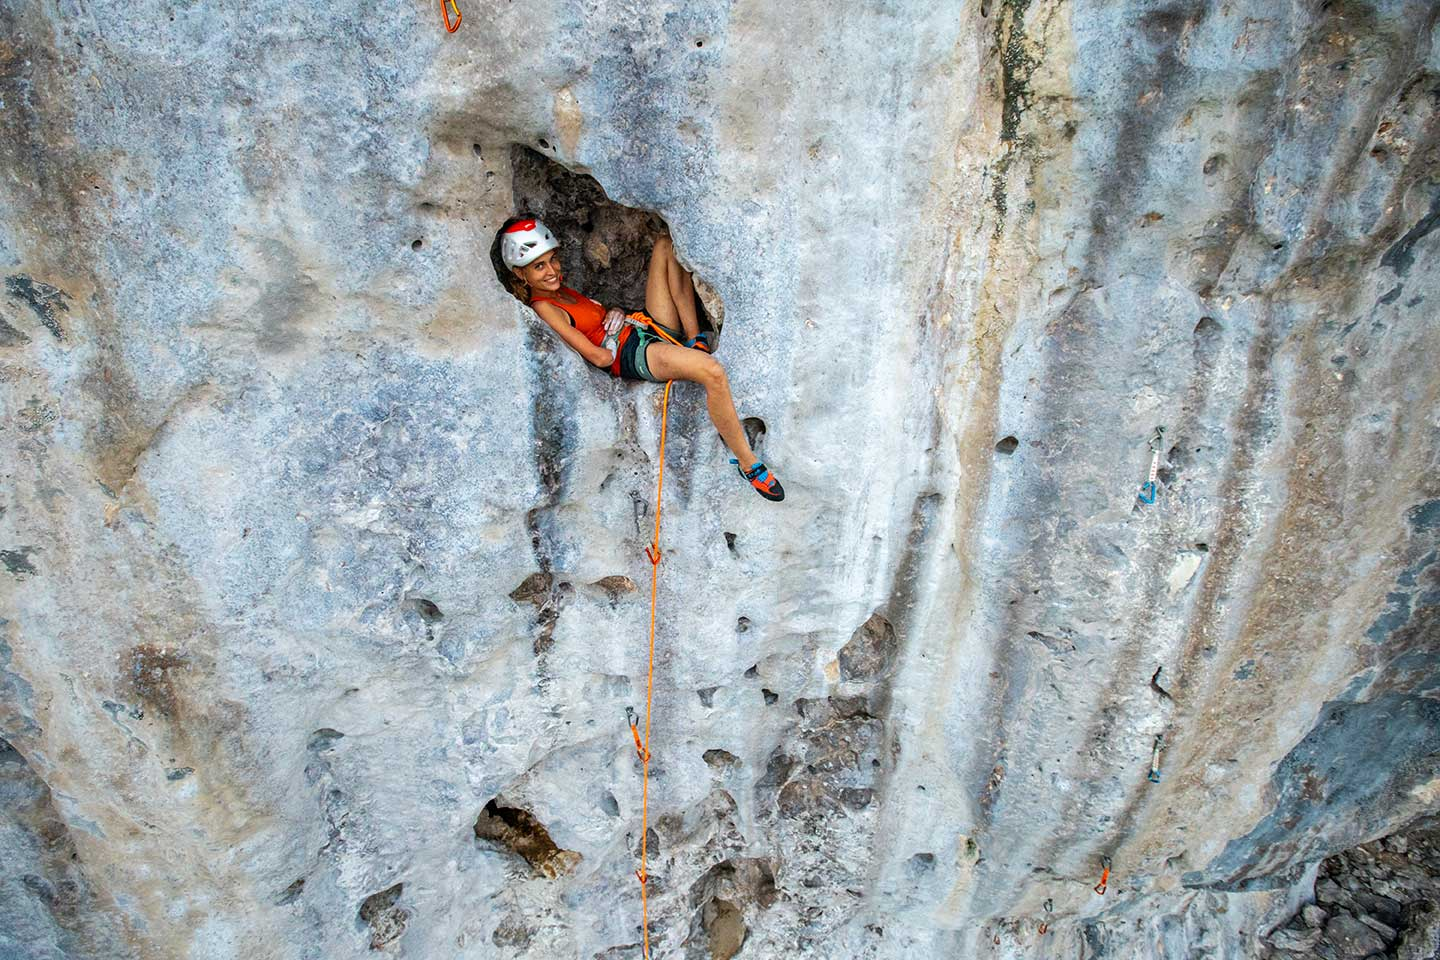 Following spread The Paraclimbing World Champion Solenne Piret, takes a rest on <em>Esprit Traditionnel</em> (6b+ / 5.10d). Photo: Courtesy of Gestalten.